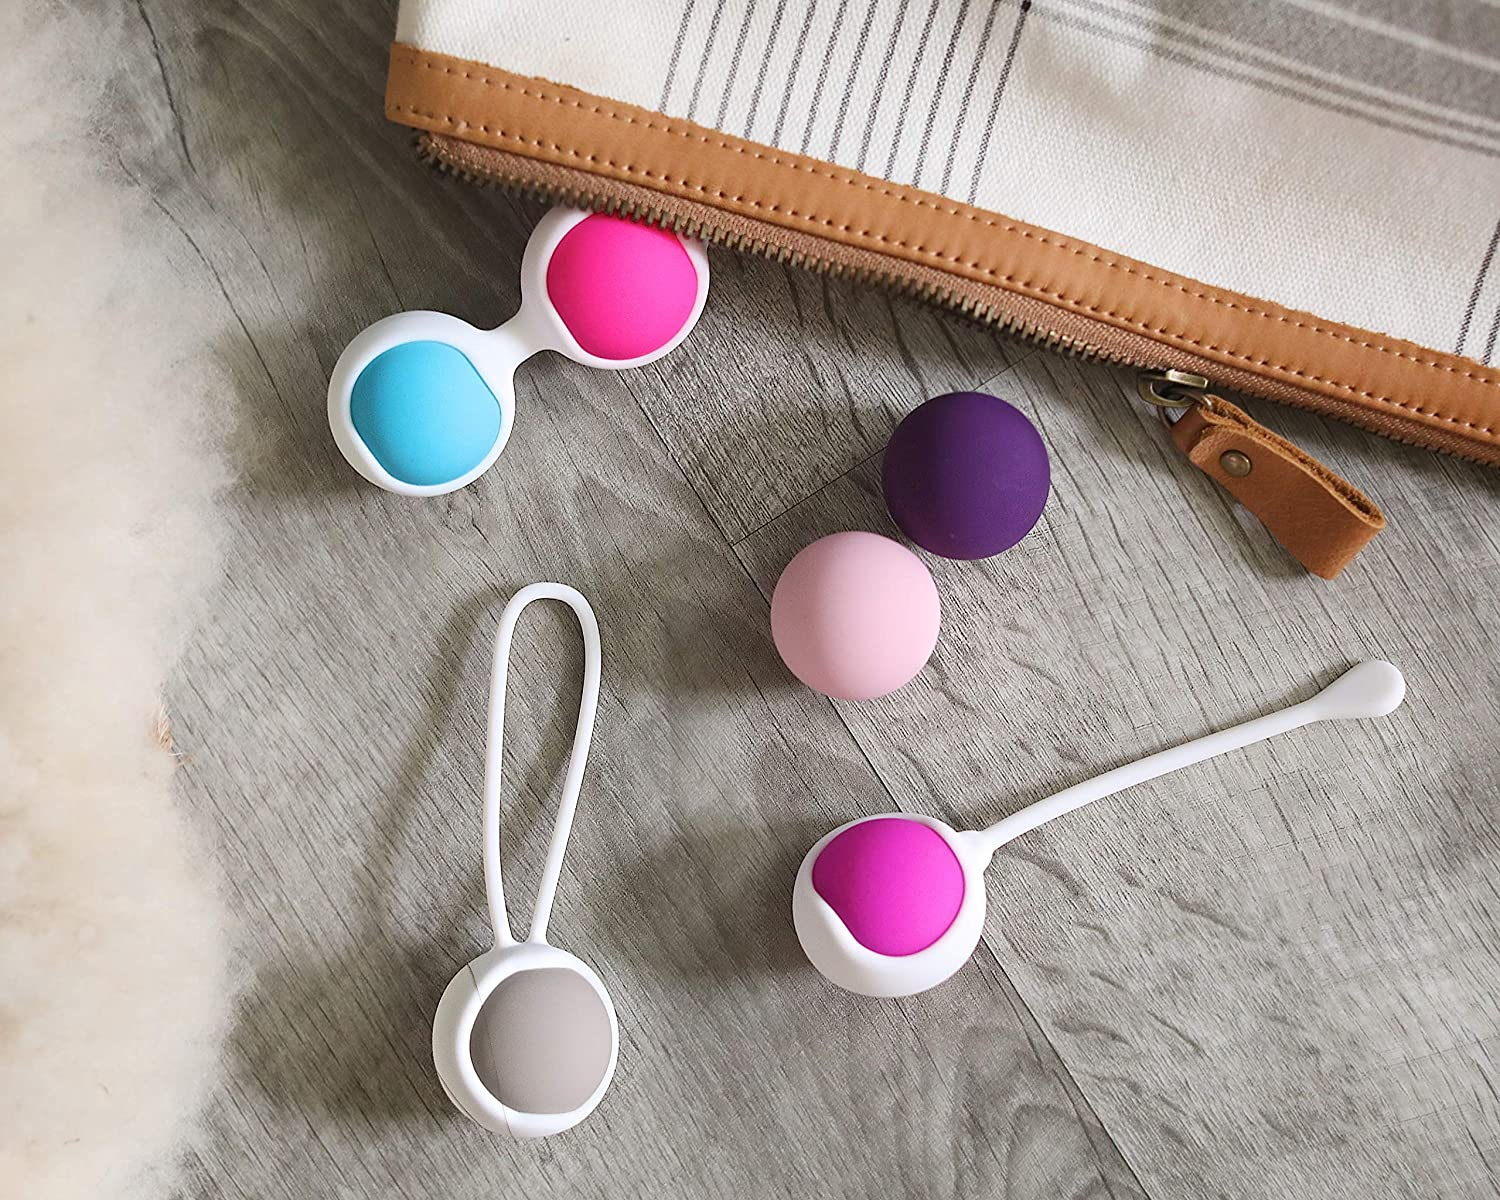 Ben Wa Progressive Kegel Weight Exercise System: 6 Weights for Woman Tightening, Beginner to Advance Strengthen Pelvic Floor Muscle Recovery and Resolves Incontinence & Bladder Control: Health & Personal Care